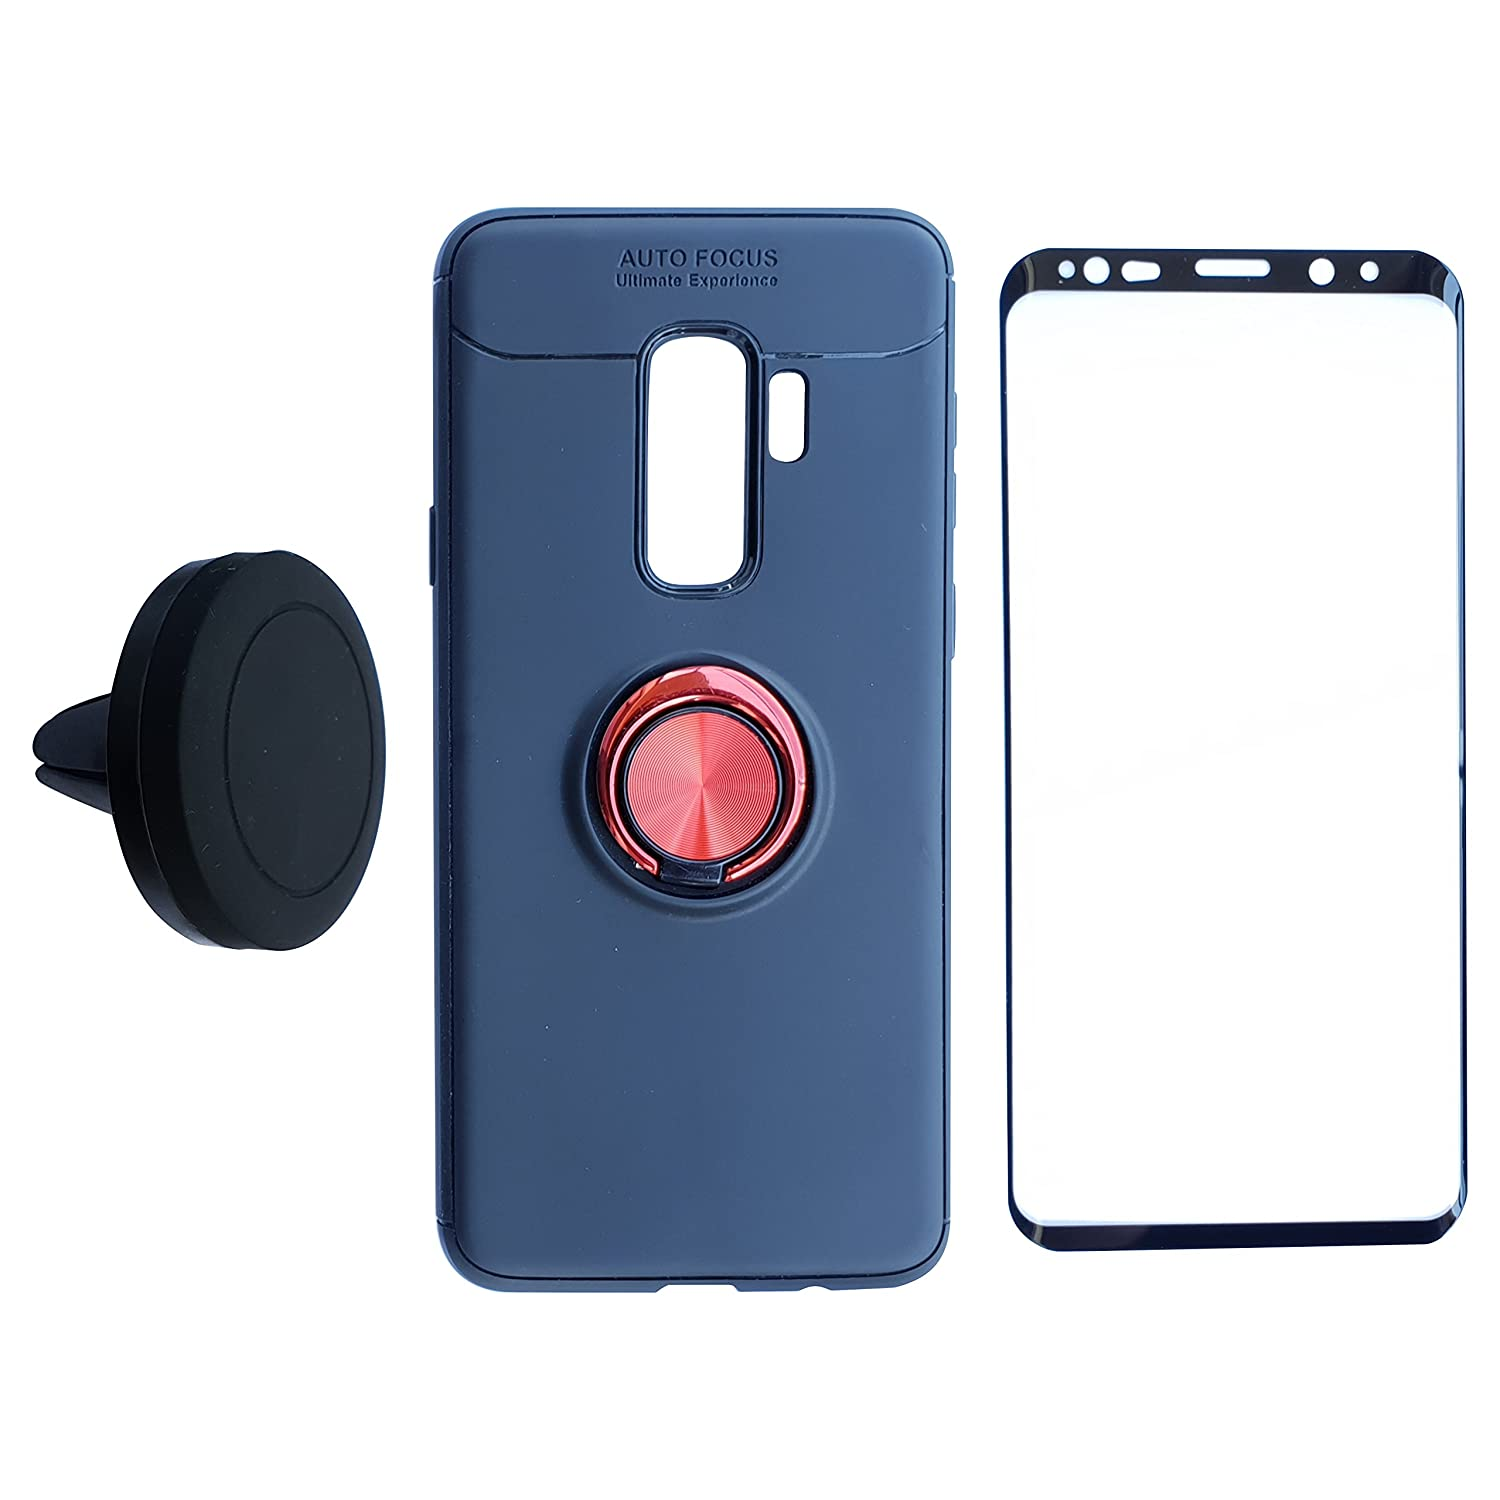 Amazon Samsung Galaxy S9Plus Case Screen Protector Car Cradle Set NOT S9 Case NOT S9 Screen APEX Intuition Anti Drop Invisible Finger